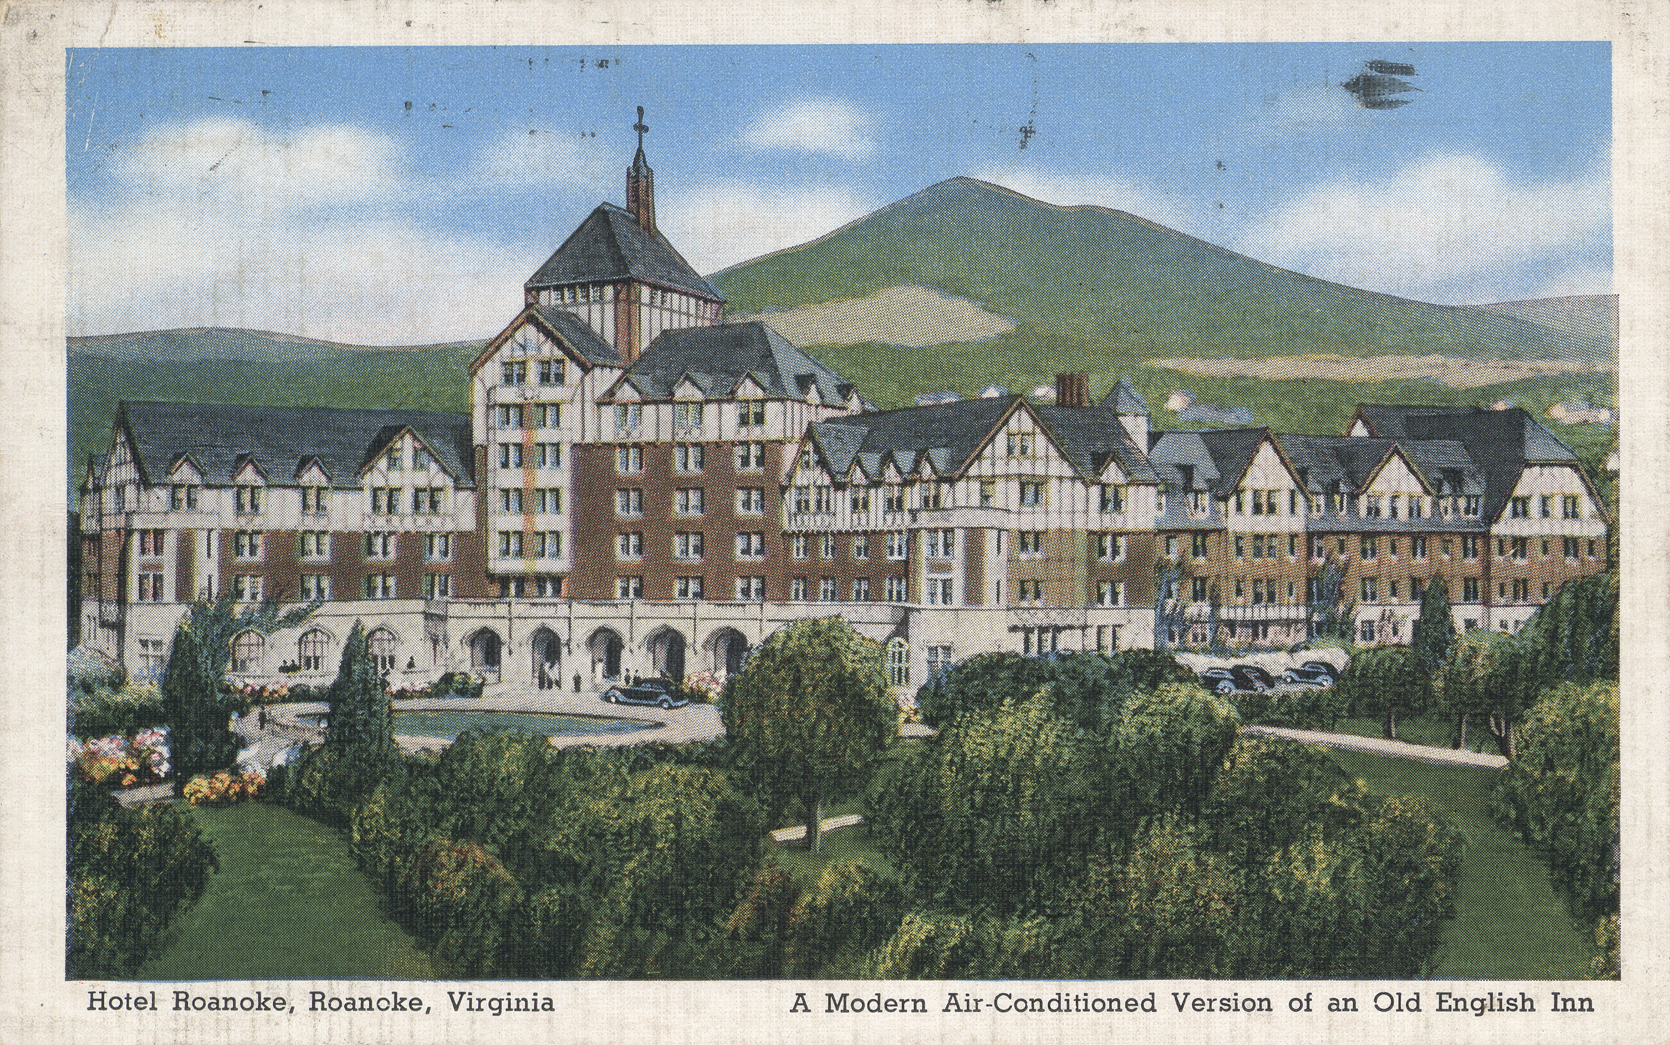 PC 116.84 Hotel Roanoke.jpg